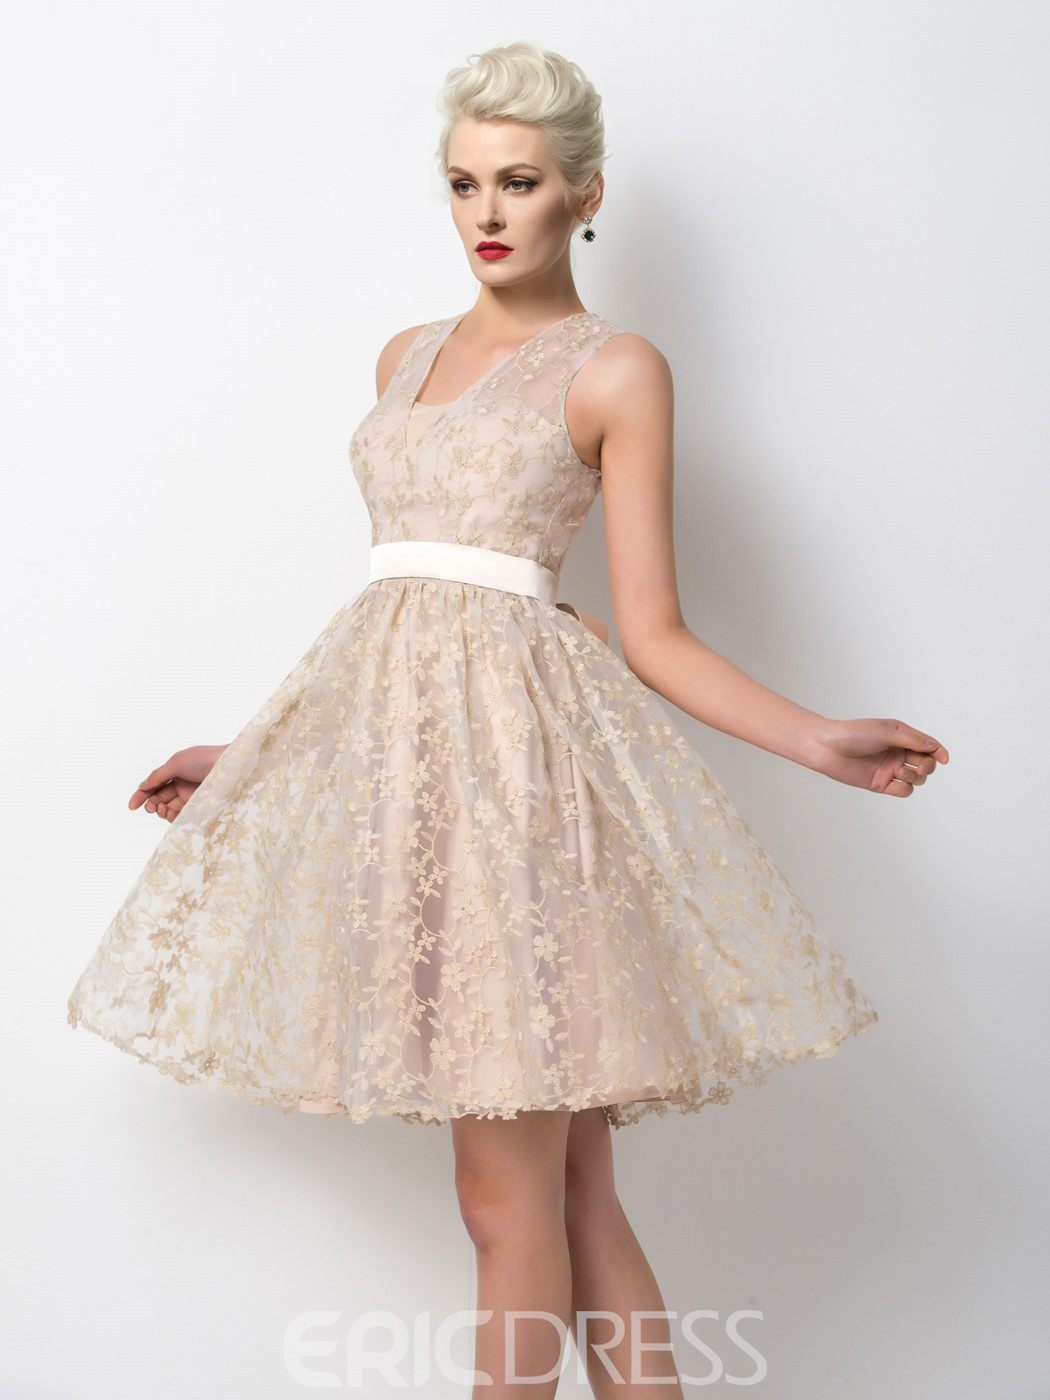 Ericdress Amazing Appliques A-Line Short Cocktail Dress